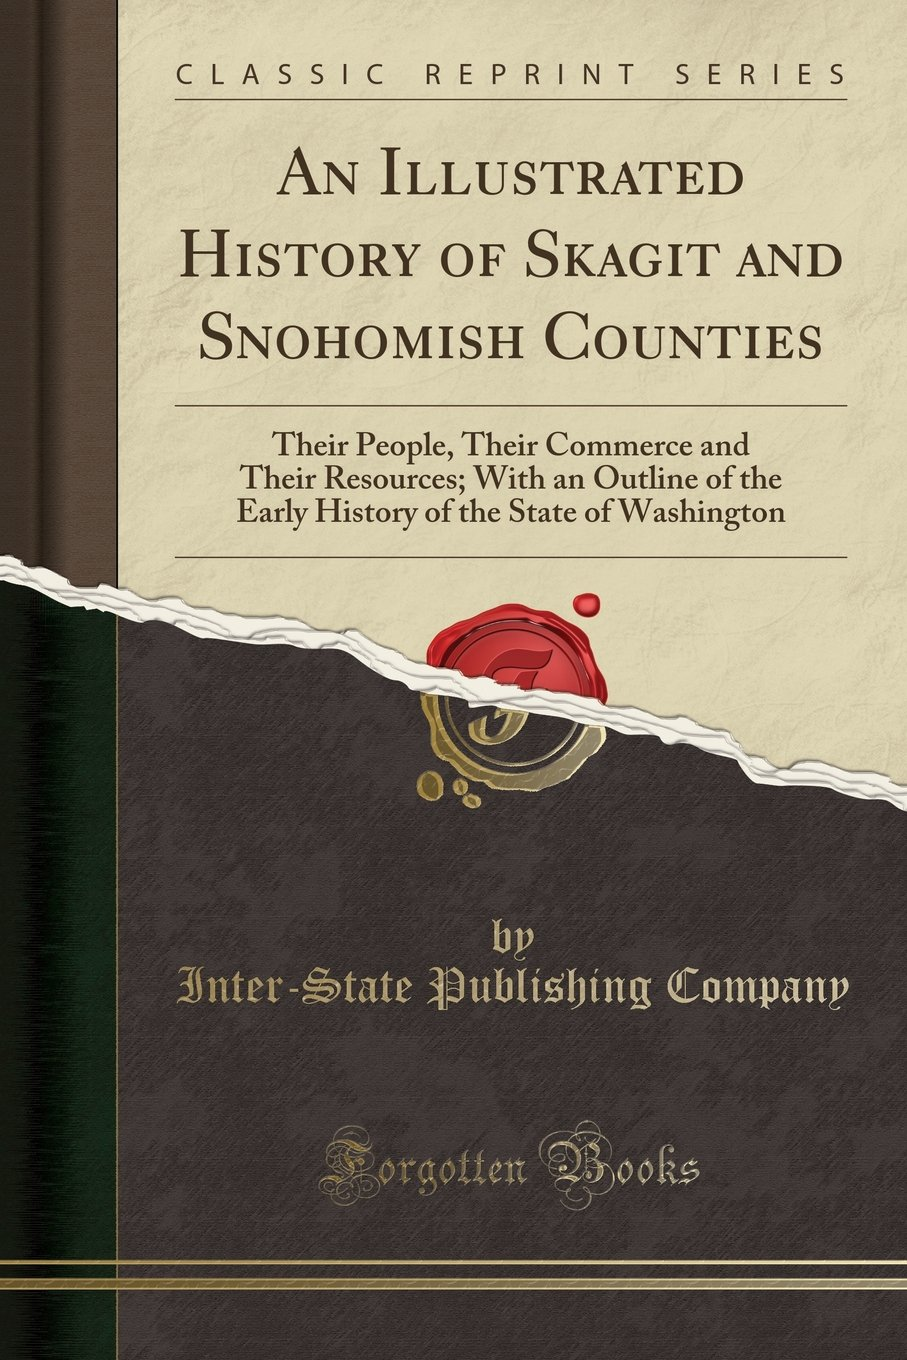 An Illustrated History of Skagit and Snohomish Counties: Their People, Their Commerce and Their Resources; With an Outline of the Early History of the State of Washington (Classic Reprint) PDF